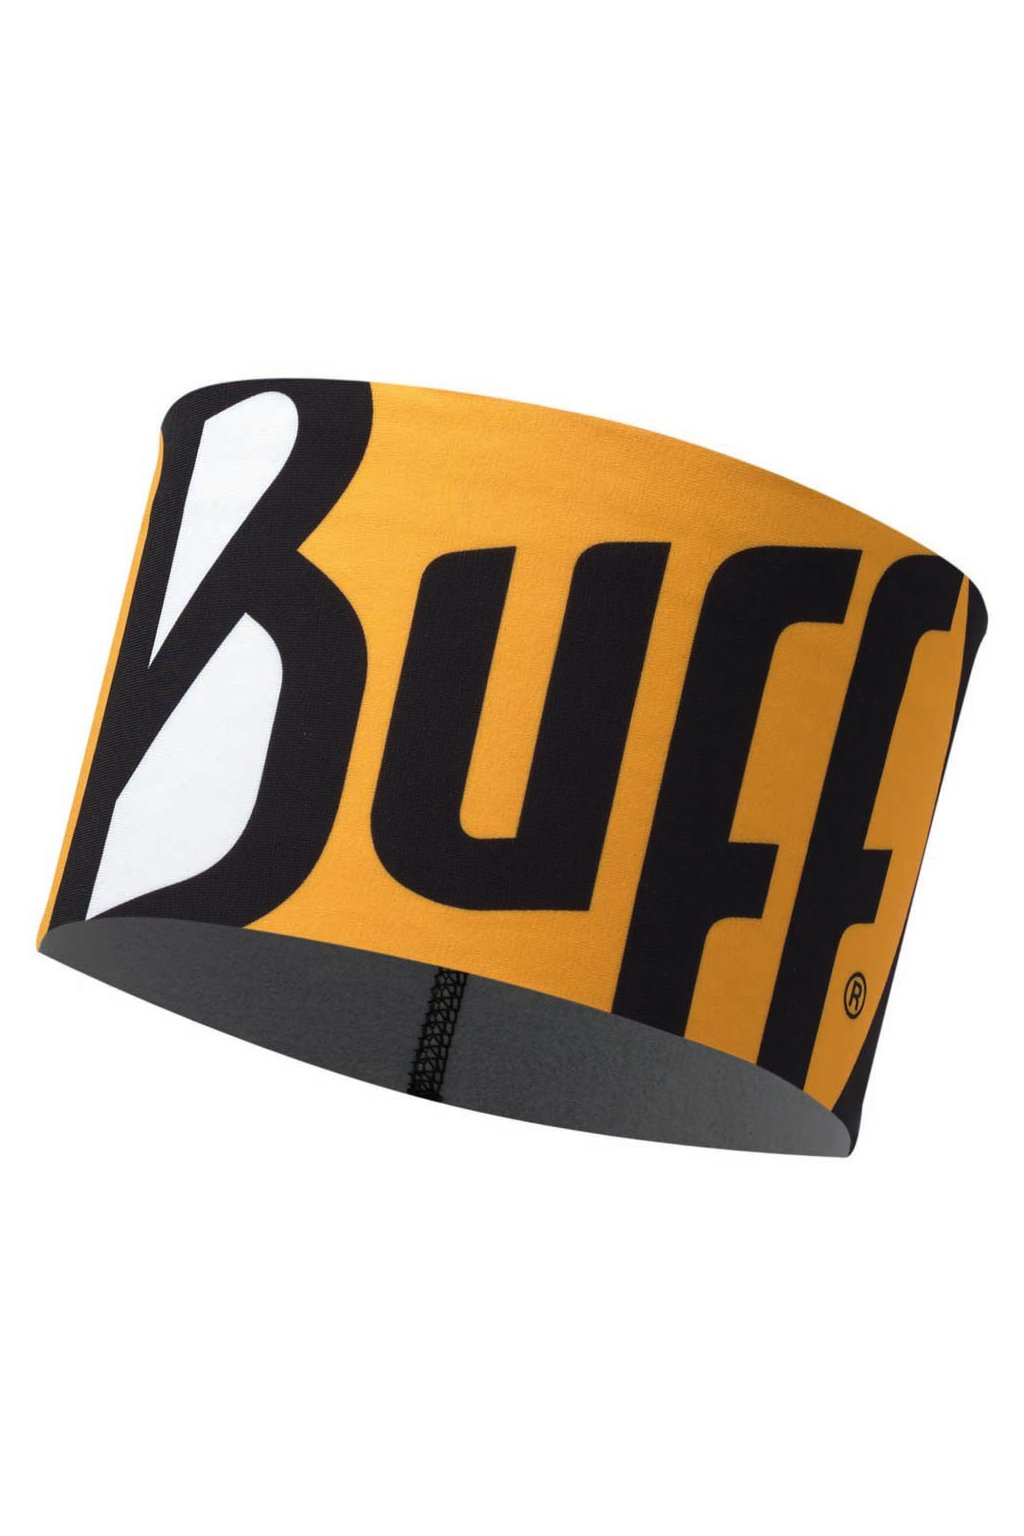 buff tech fleece (1)